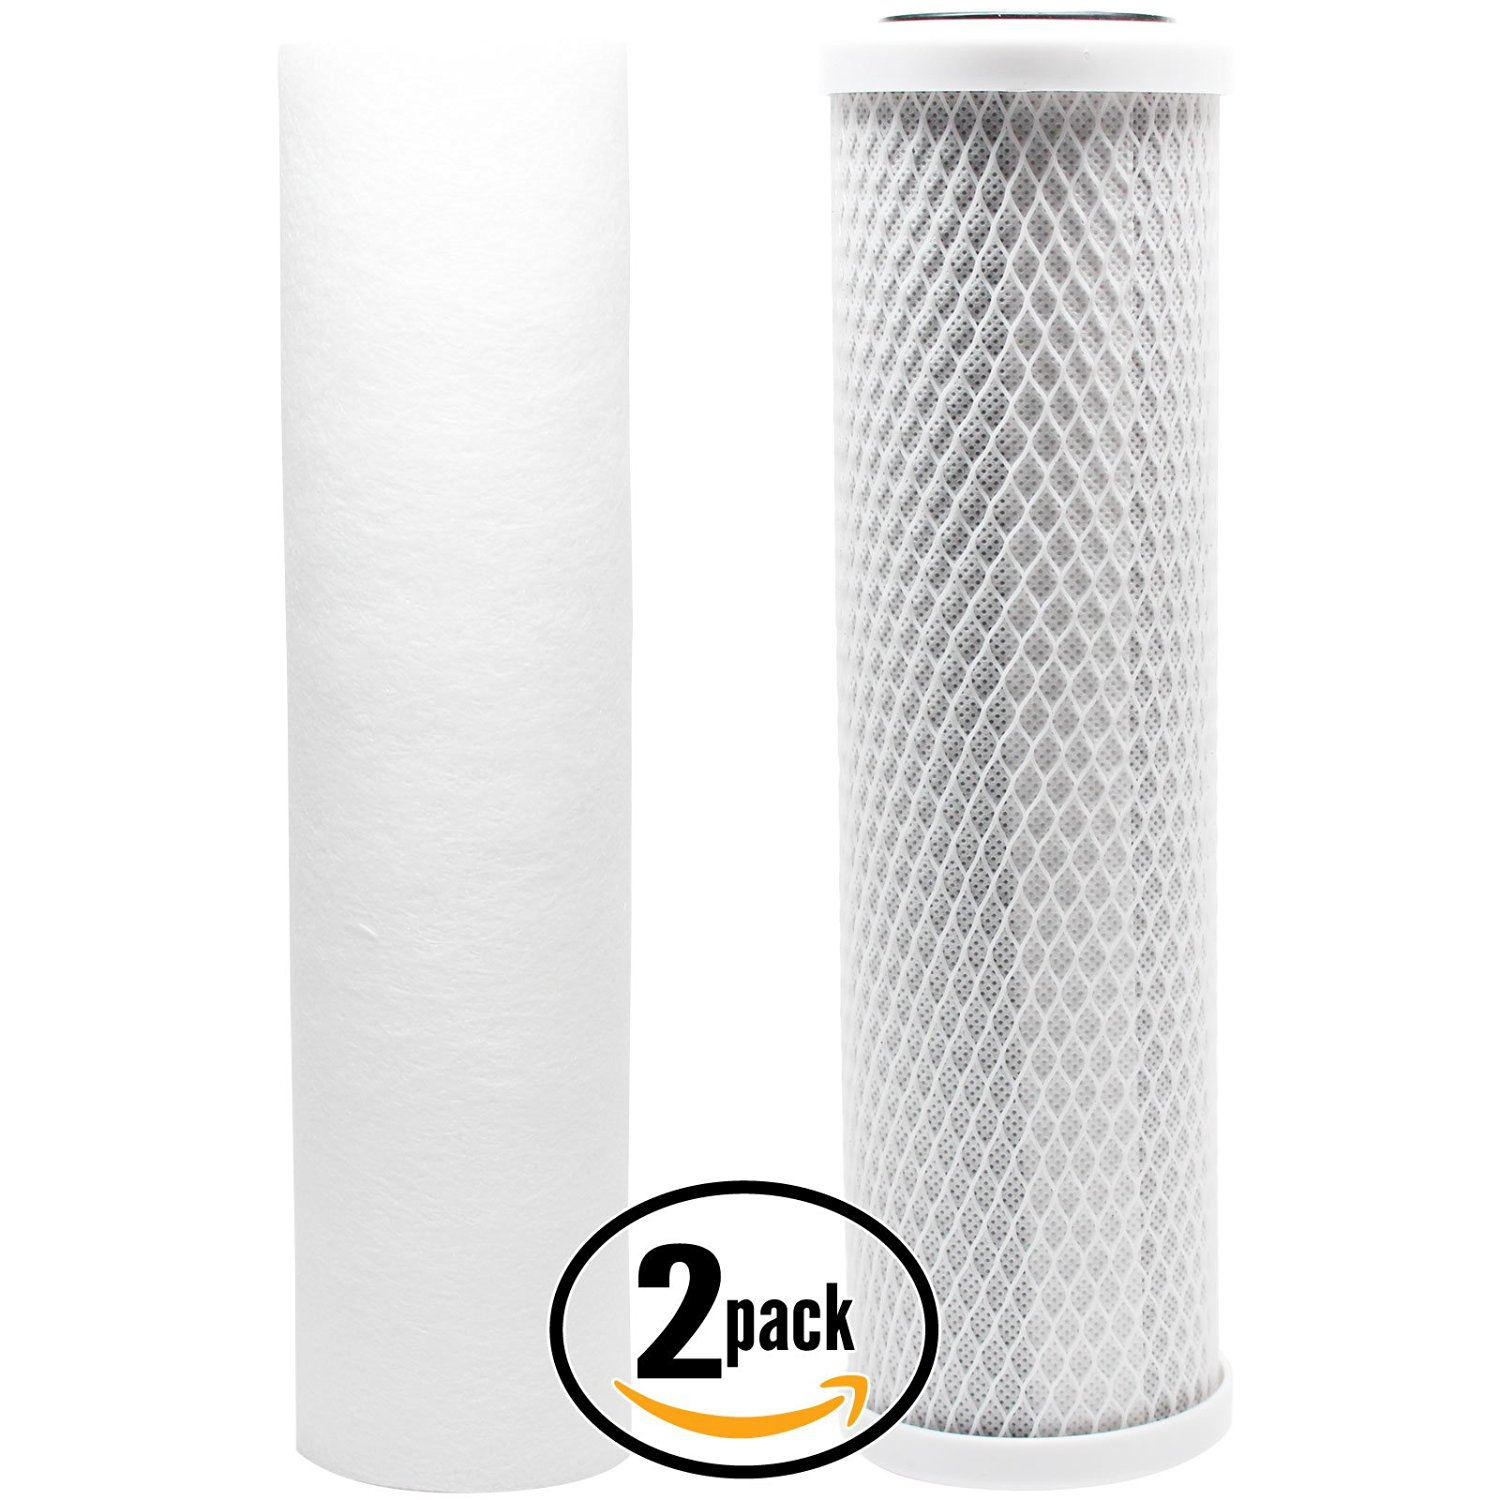 2-Pack Denali Pure Universal 10 inch Carbon Block, Sediment Filter - Compatible with iSpring RCC7, iSpring RCC7AK, iSpring RCS5T, iSpring RCC7P, iSpring RCC7AK-UV, AMPAC USA Reverse Osmosis